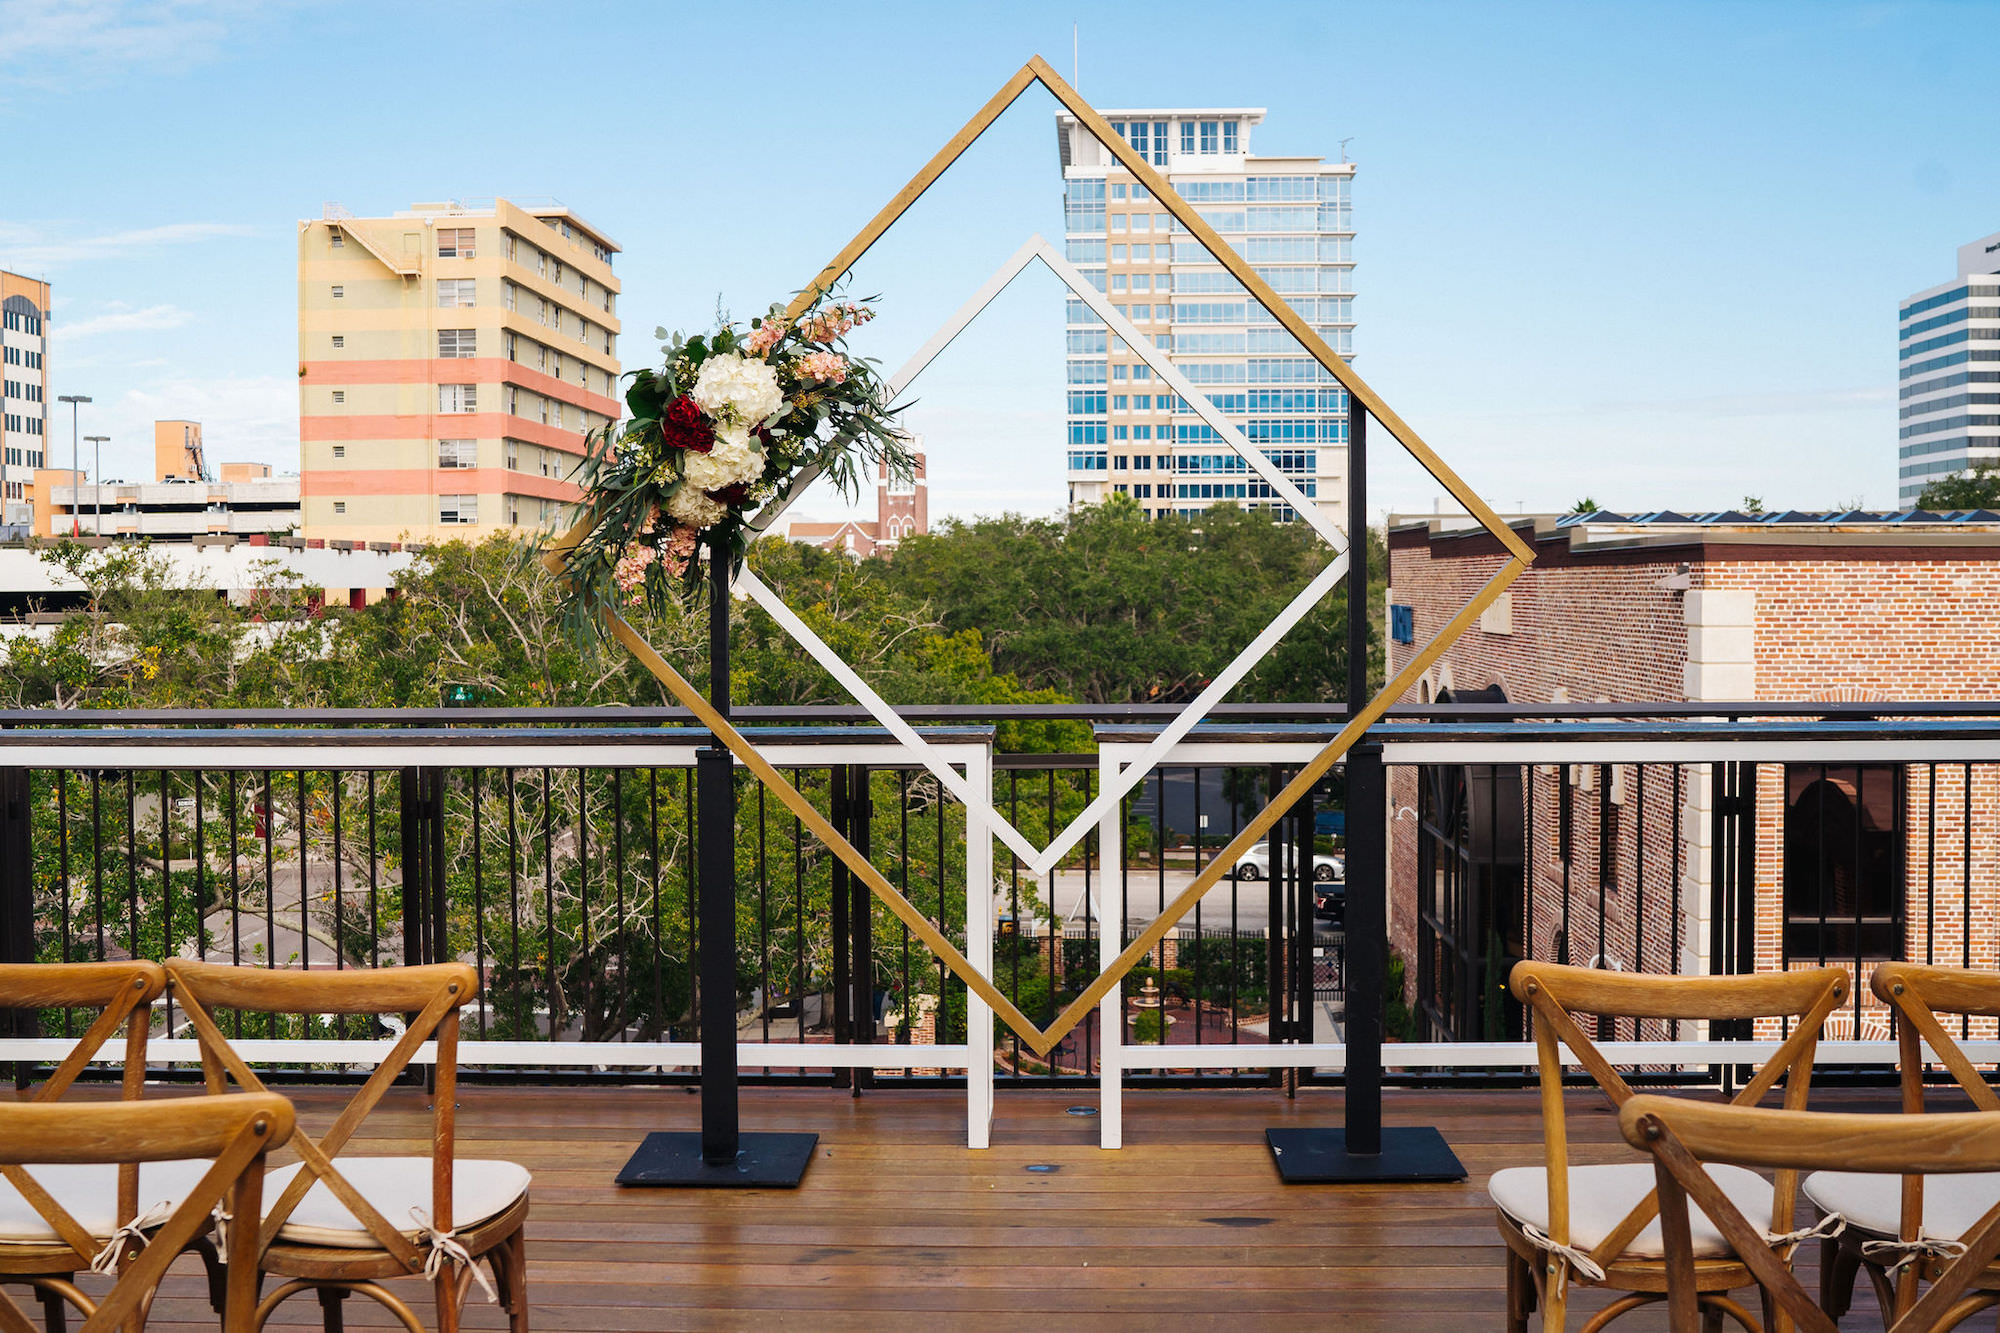 St. Petersburg Florida Wedding   St. Pete Venue Red Mesa Events   Rooftop Geometric Gold Ceremony Arch Backdrop